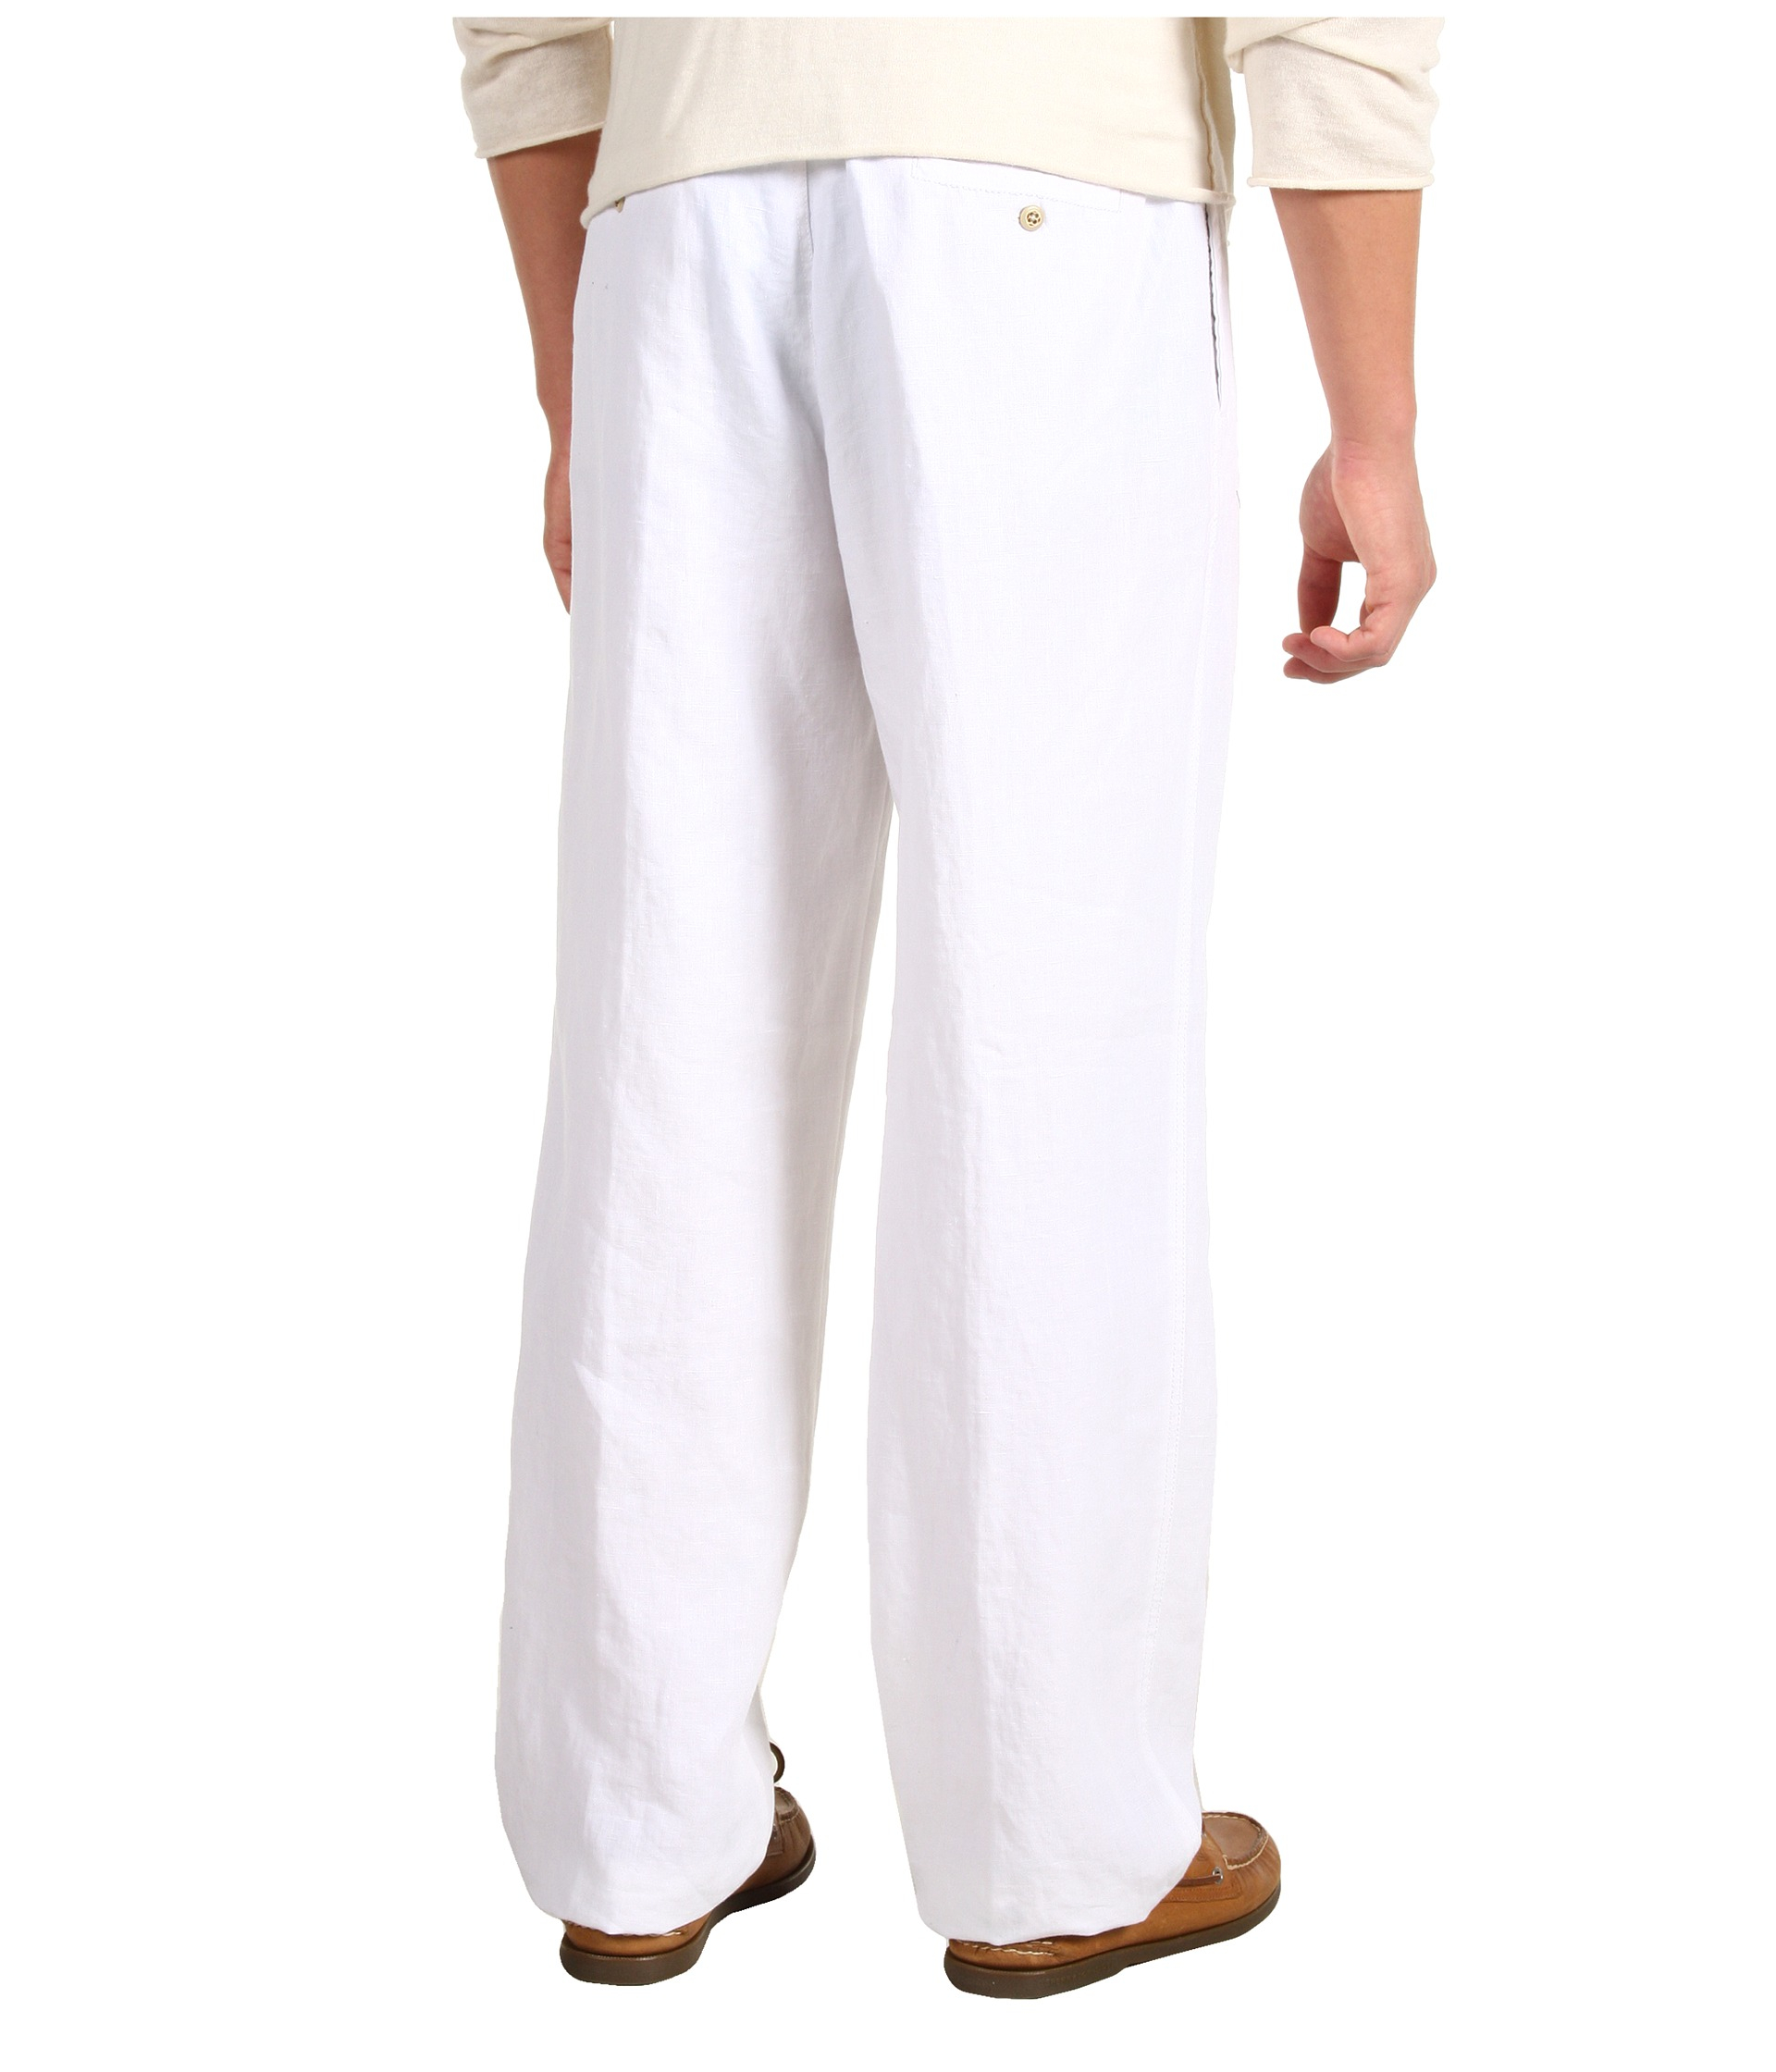 Awesome RAGZ DRESSWARE NEWS How To Wear Summery Linen Pants  Ragz Dressware